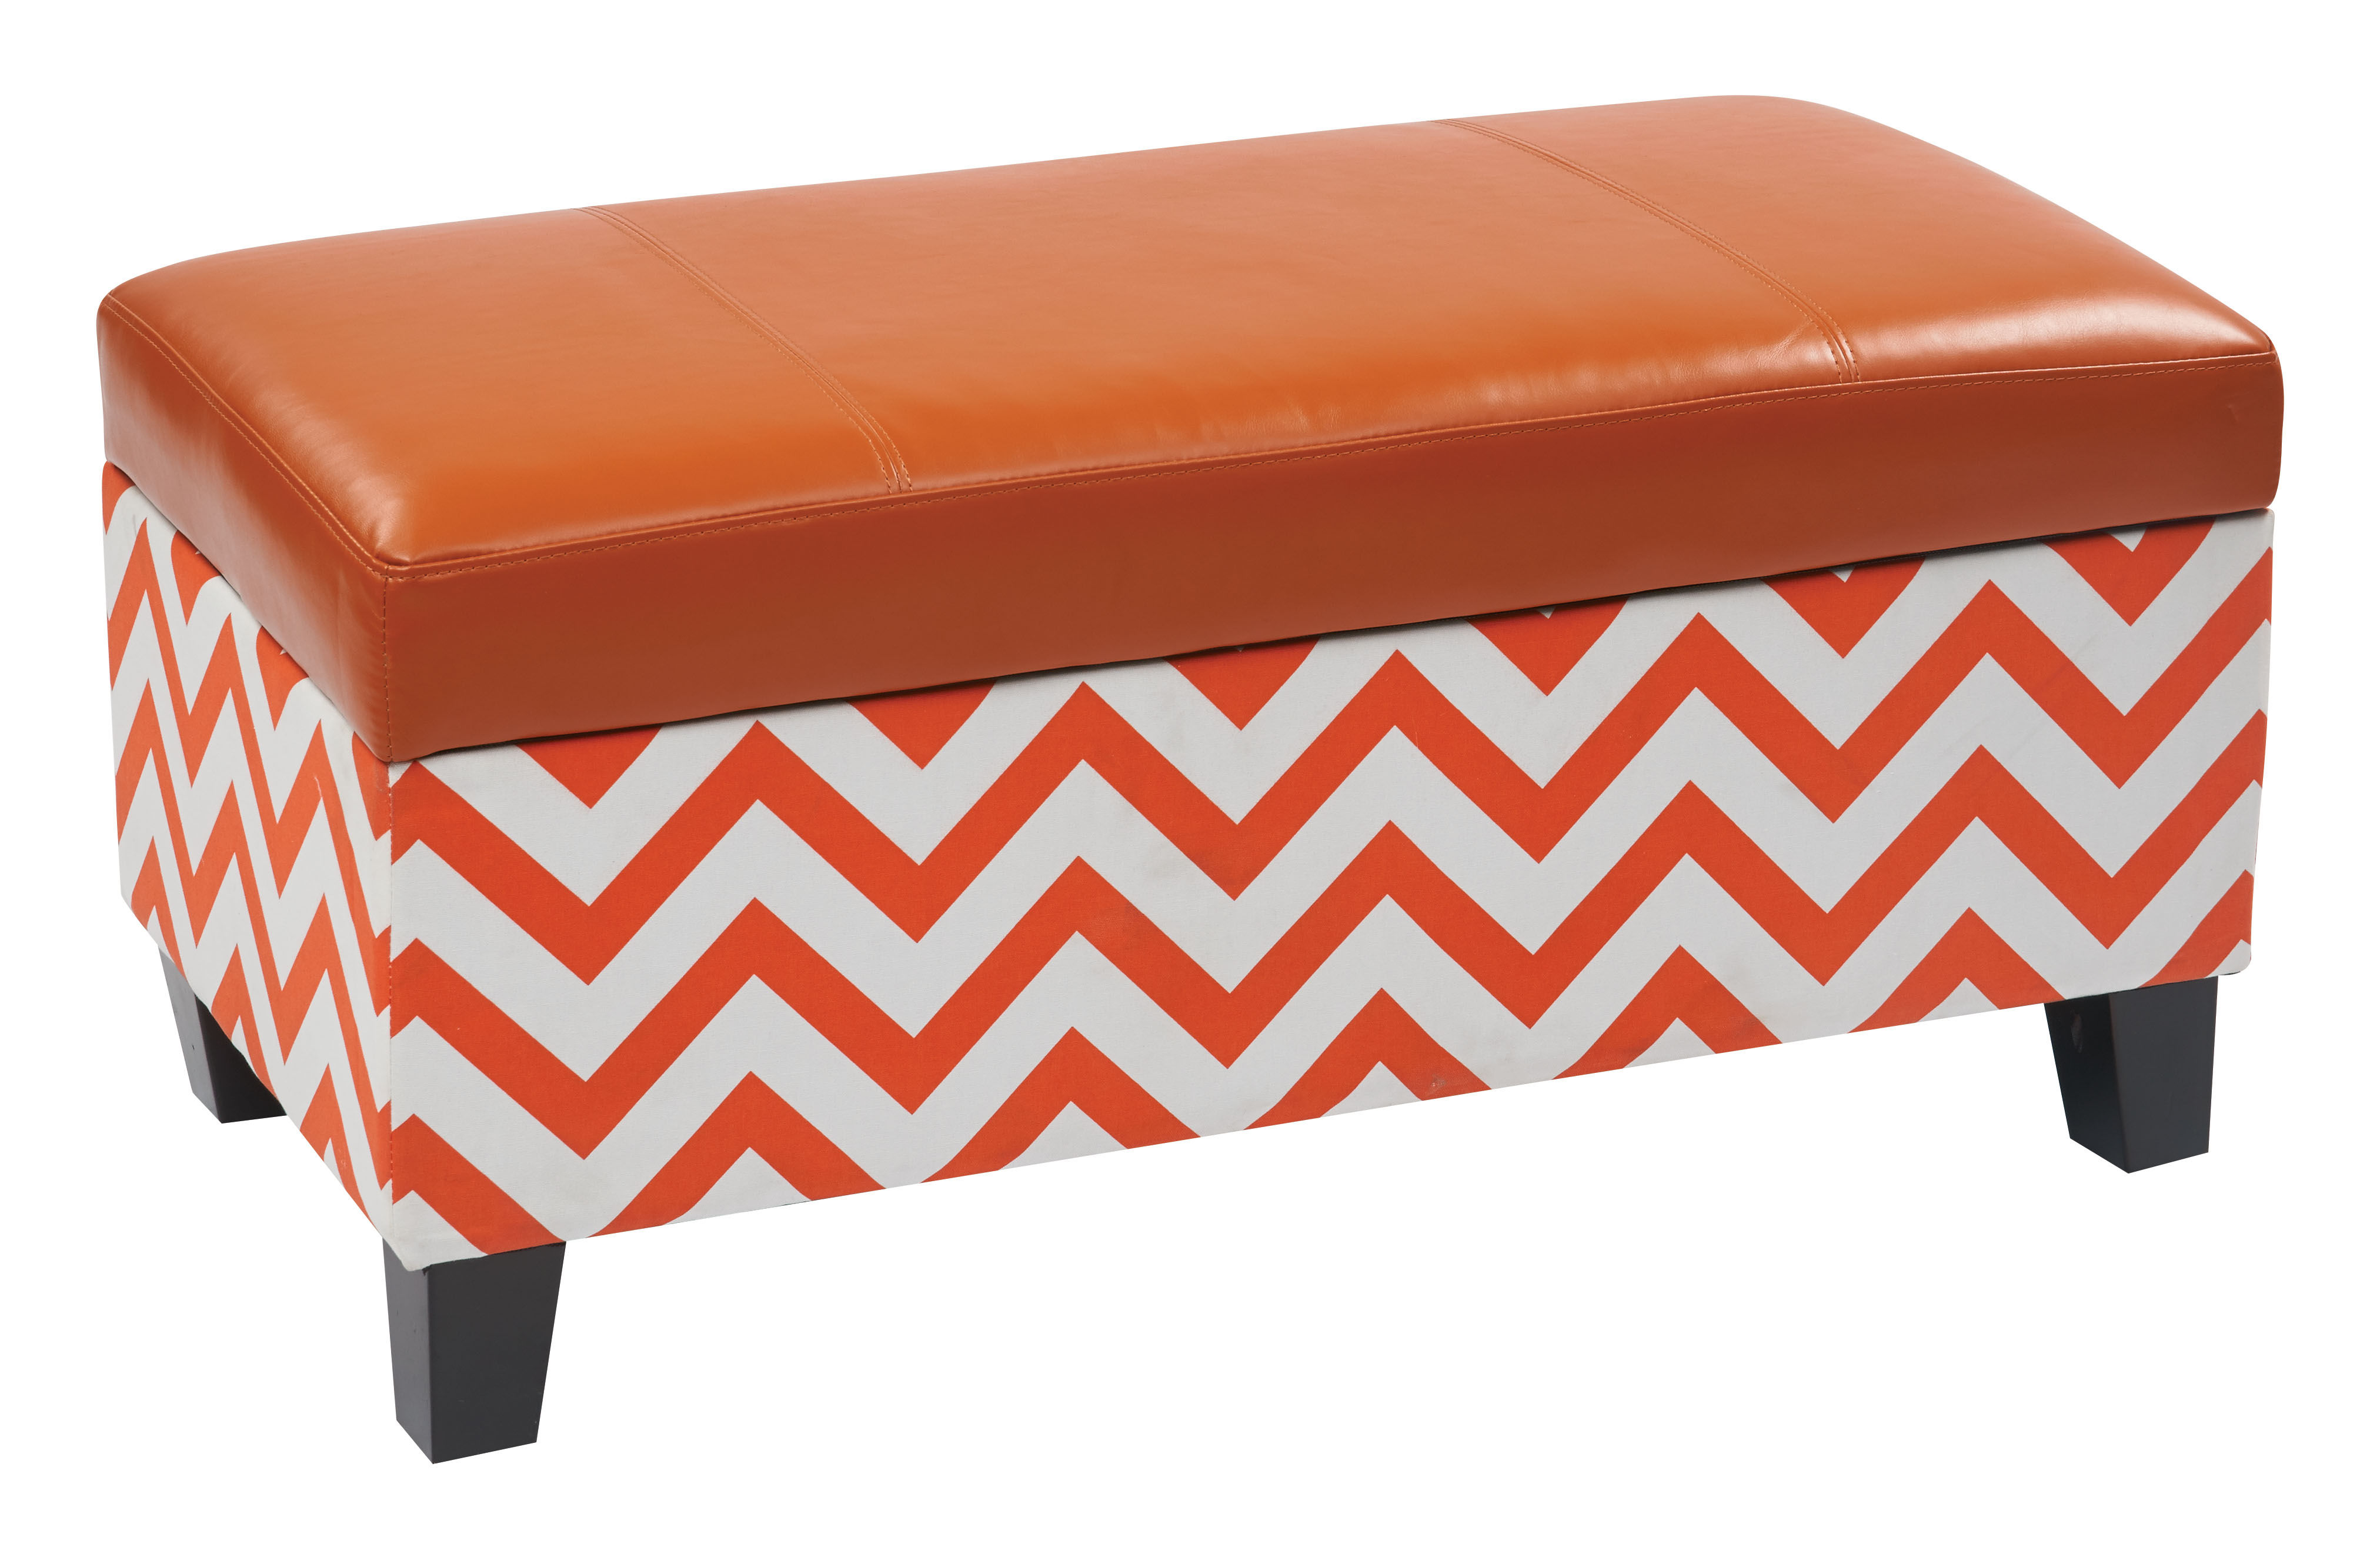 Magnificent Hudson Orange Zig Zag Storage Ottoman Osp Hud3819 Z8 The Ocoug Best Dining Table And Chair Ideas Images Ocougorg